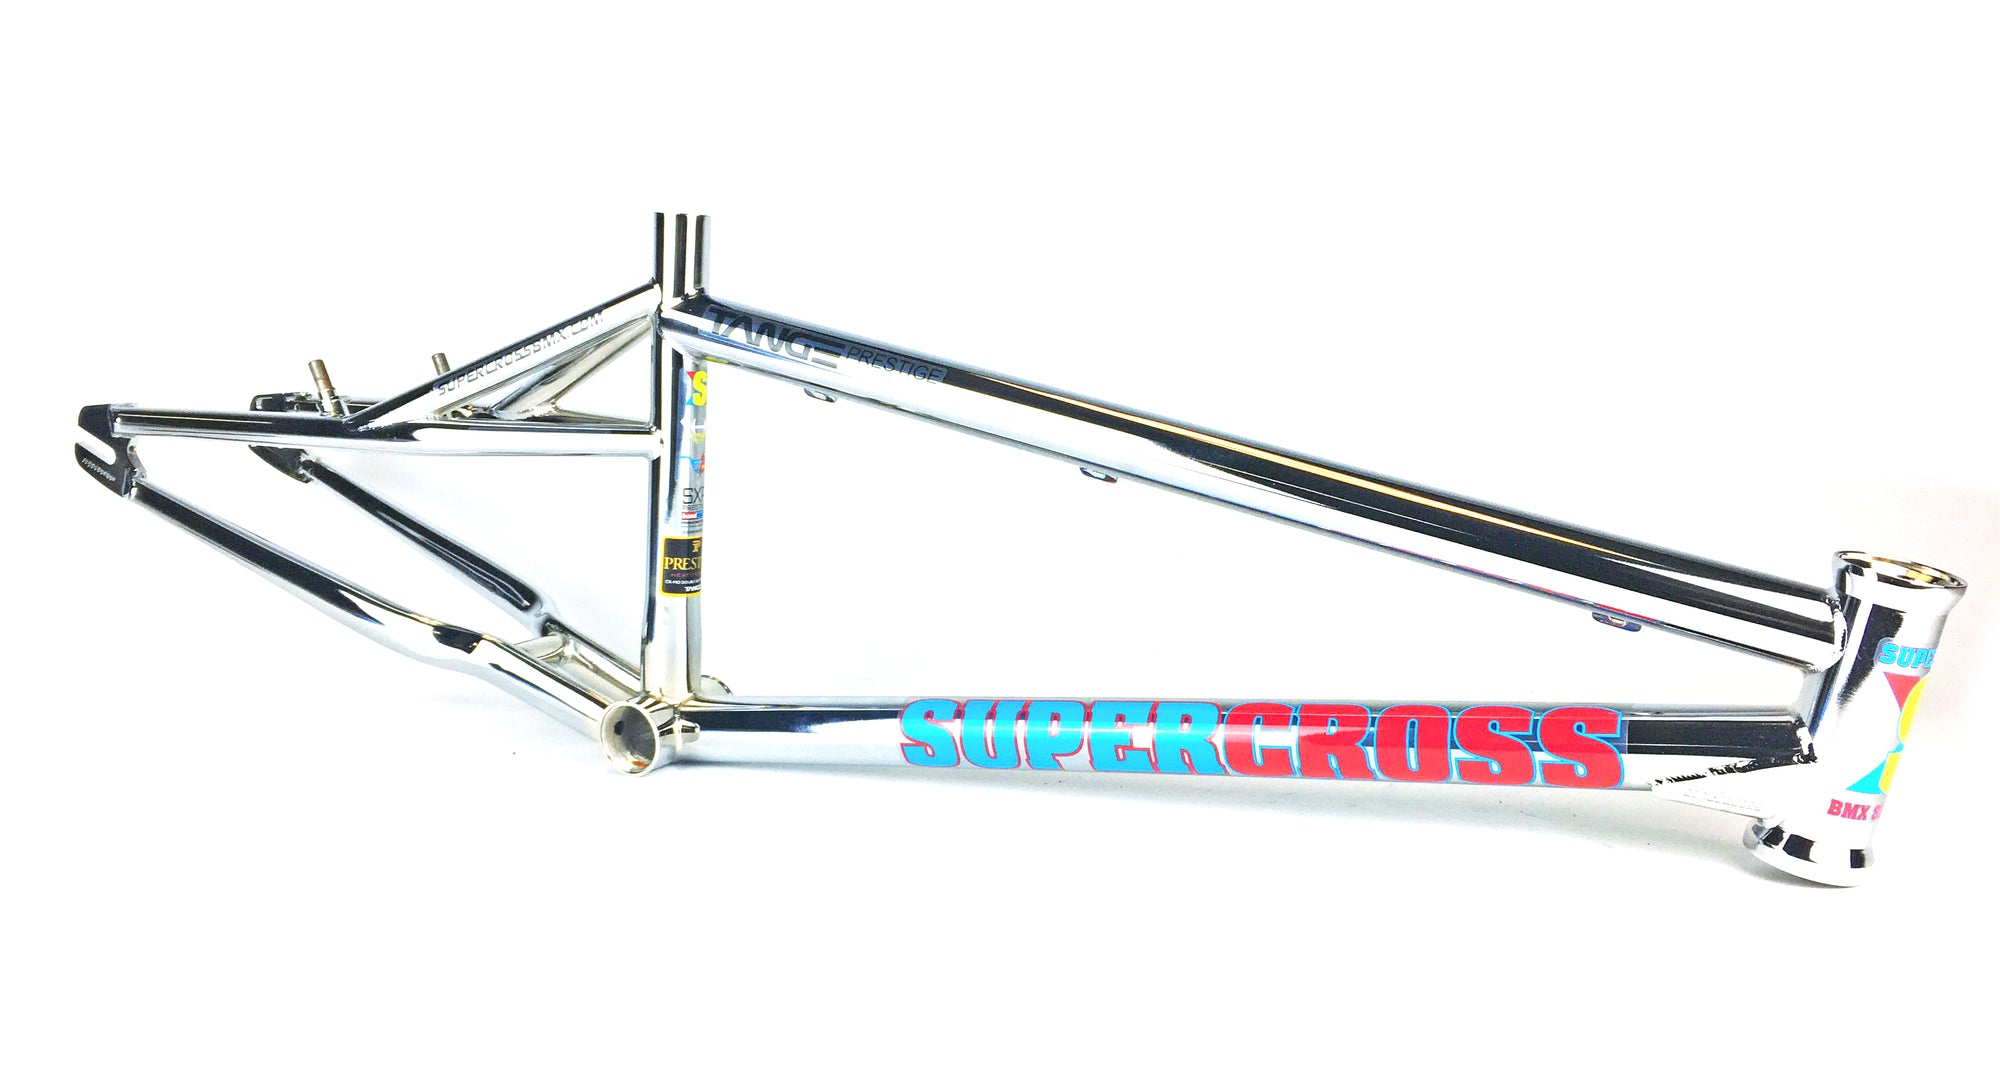 Supercross BMX | SX250 - 30 Year Anniversary BMX Race Frame - The Six Bar - Supercross BMX - BMX Racing